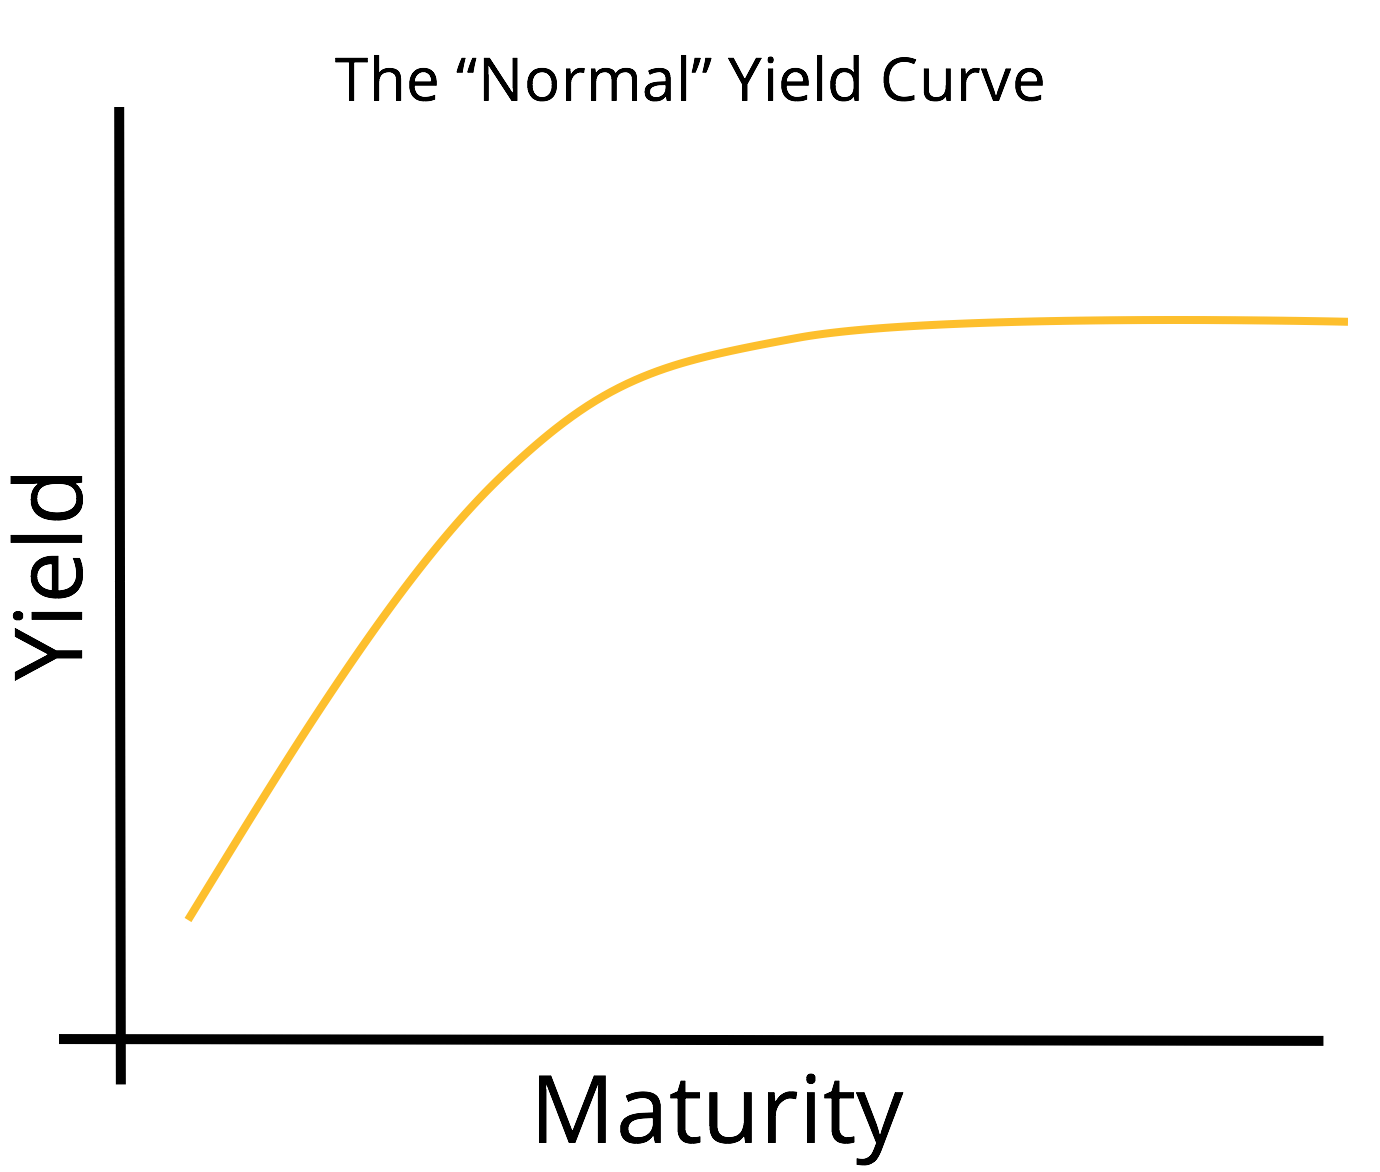 The Normal Yield Curve